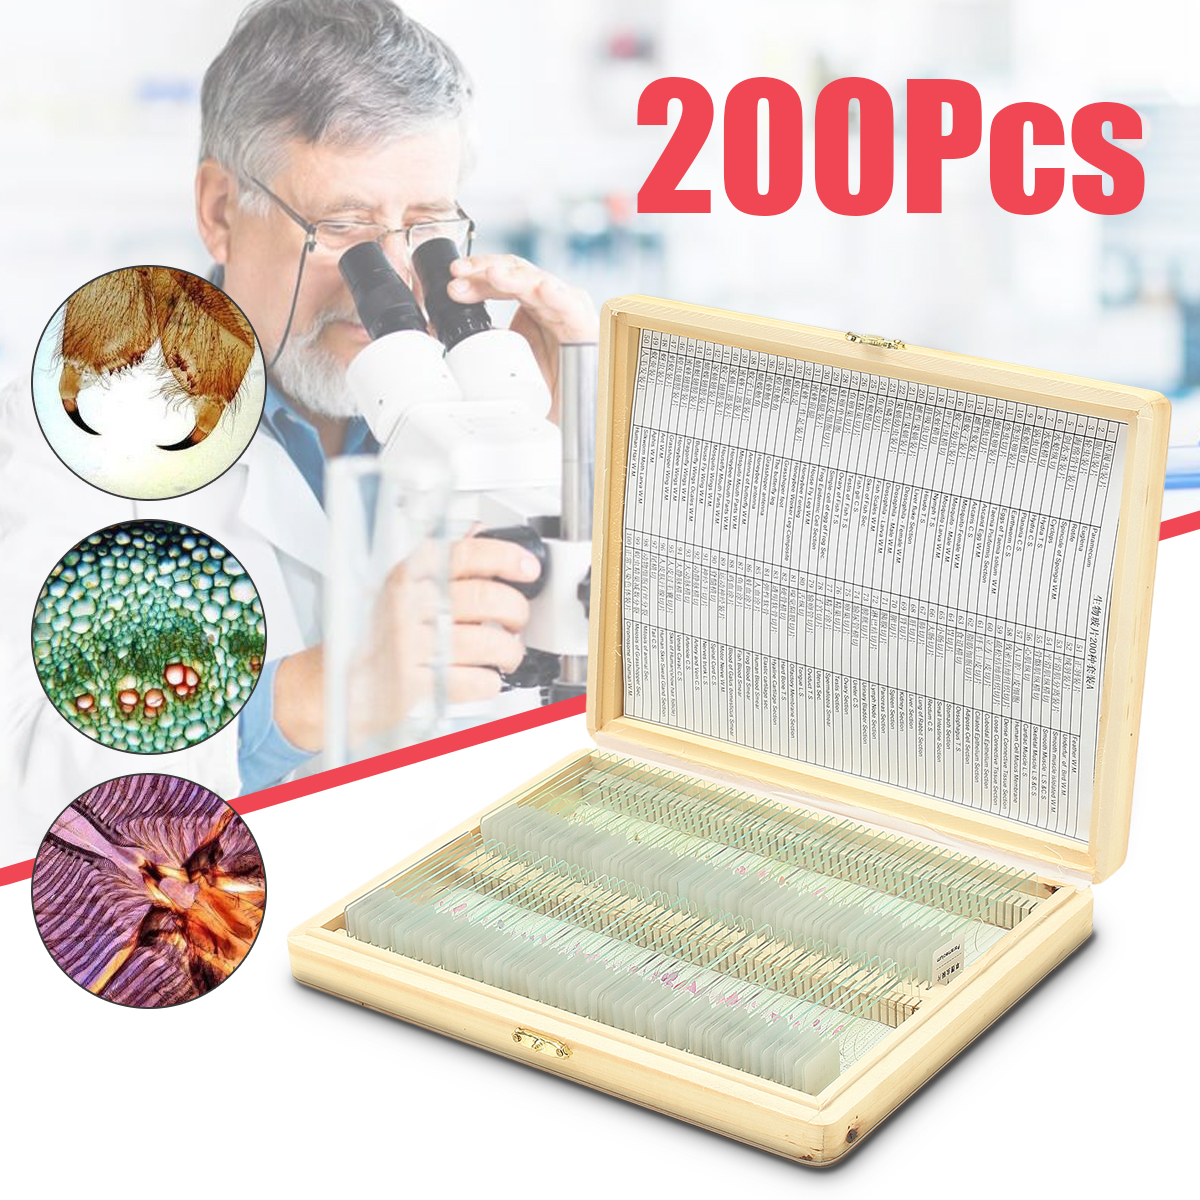 2xBoxes/Set Prepared Microscope Glass Slide Science Slides 100xPlant +100x Insects Tissues slides for Biological Education купить в Москве 2019